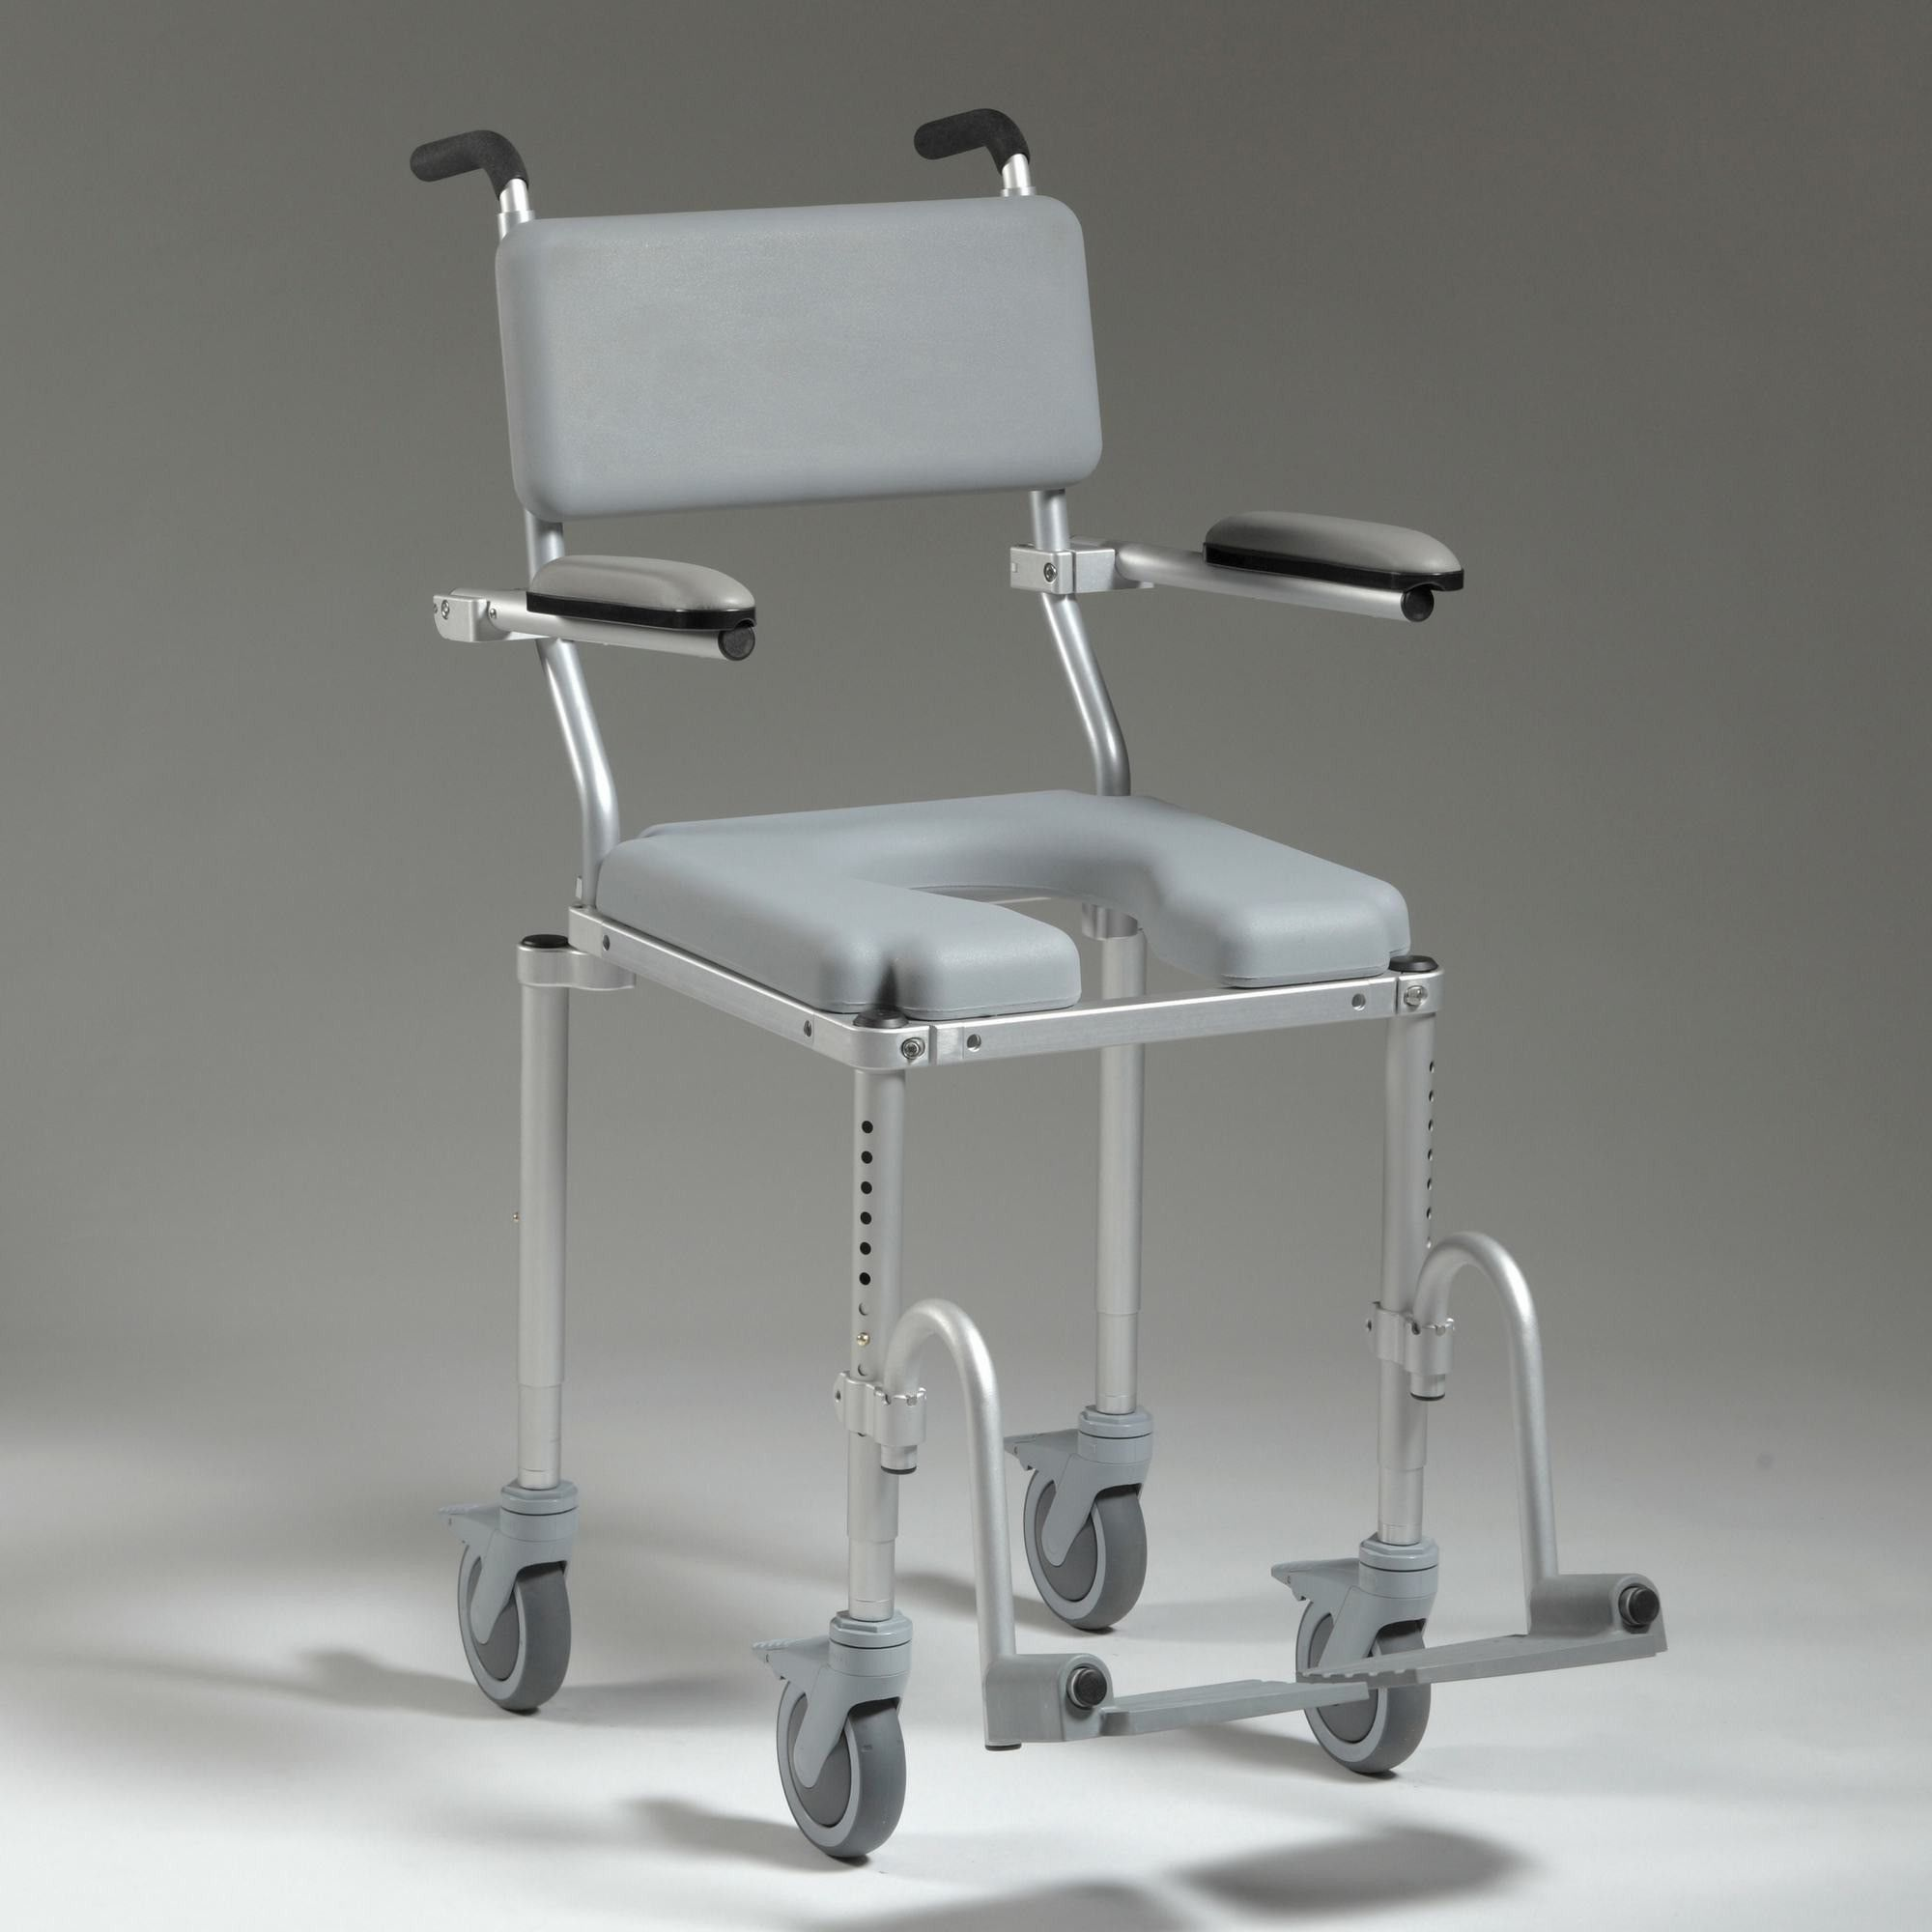 Nuprodx MultiChair 4000 Shower Chair On Wheels For